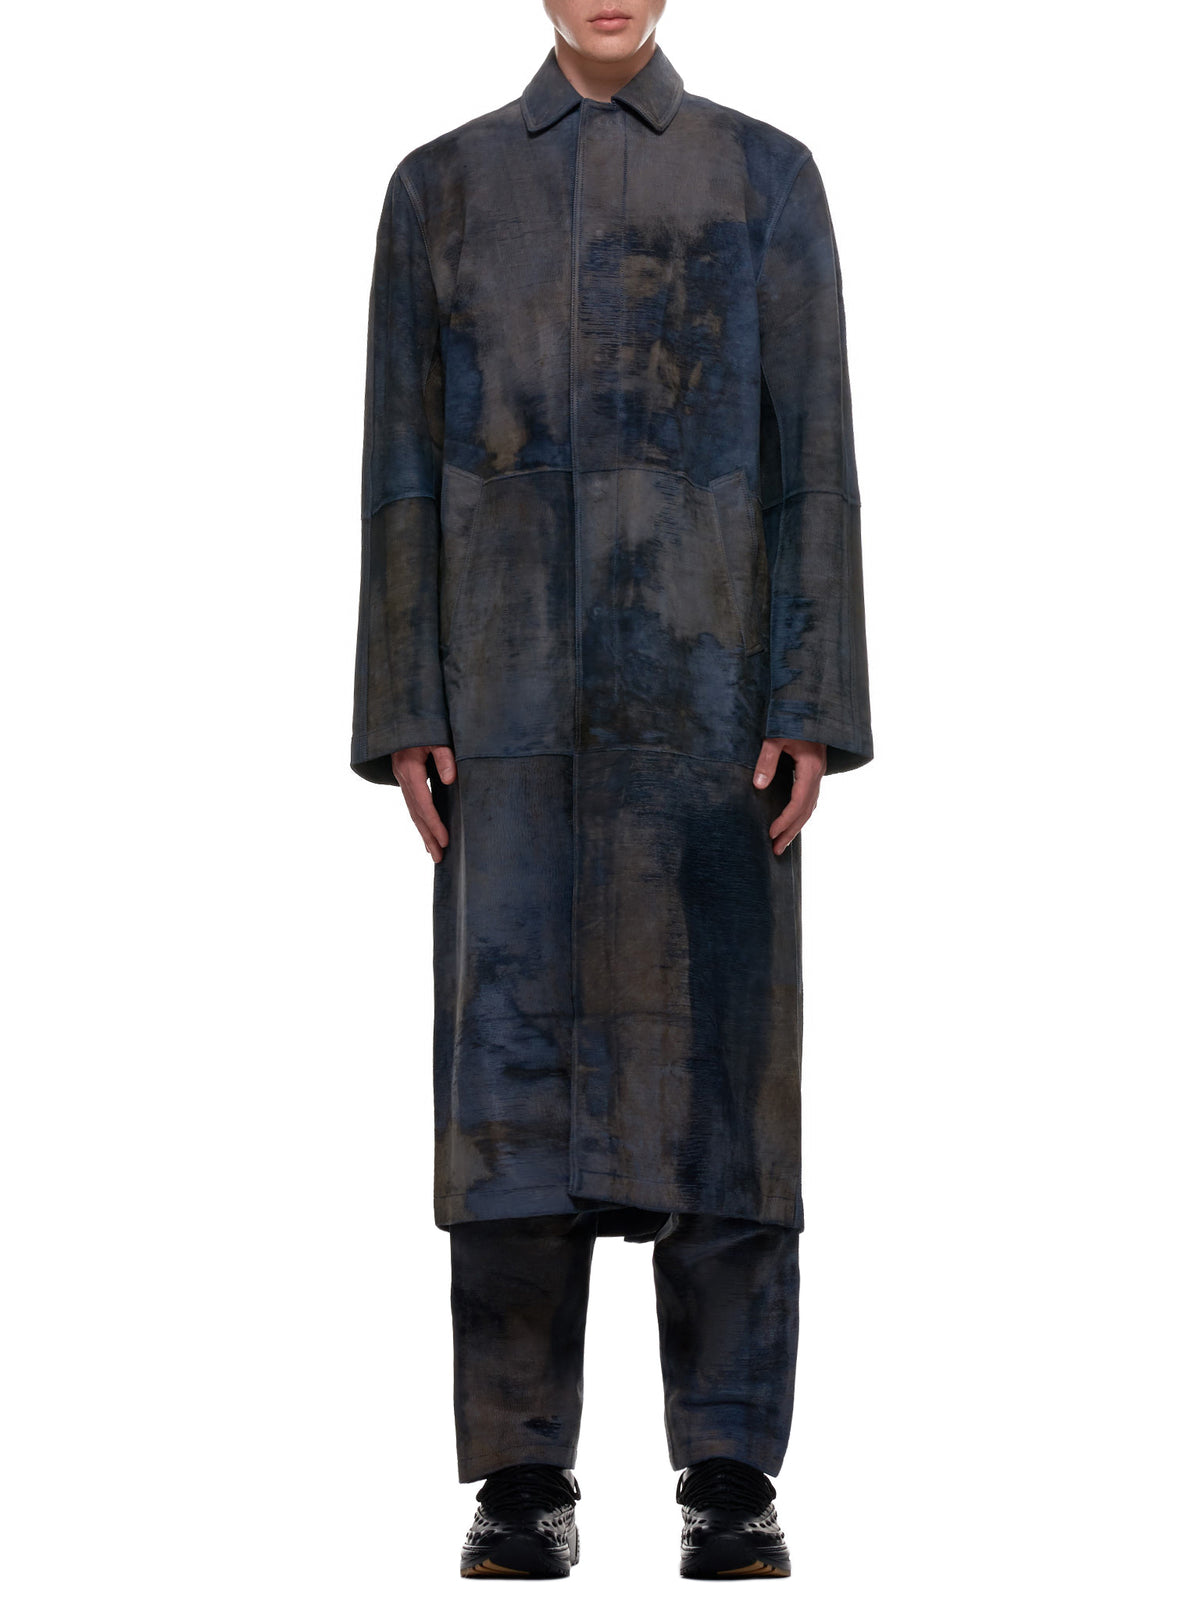 Sheep Leather Coat (001-08-STEEL-BLUE)